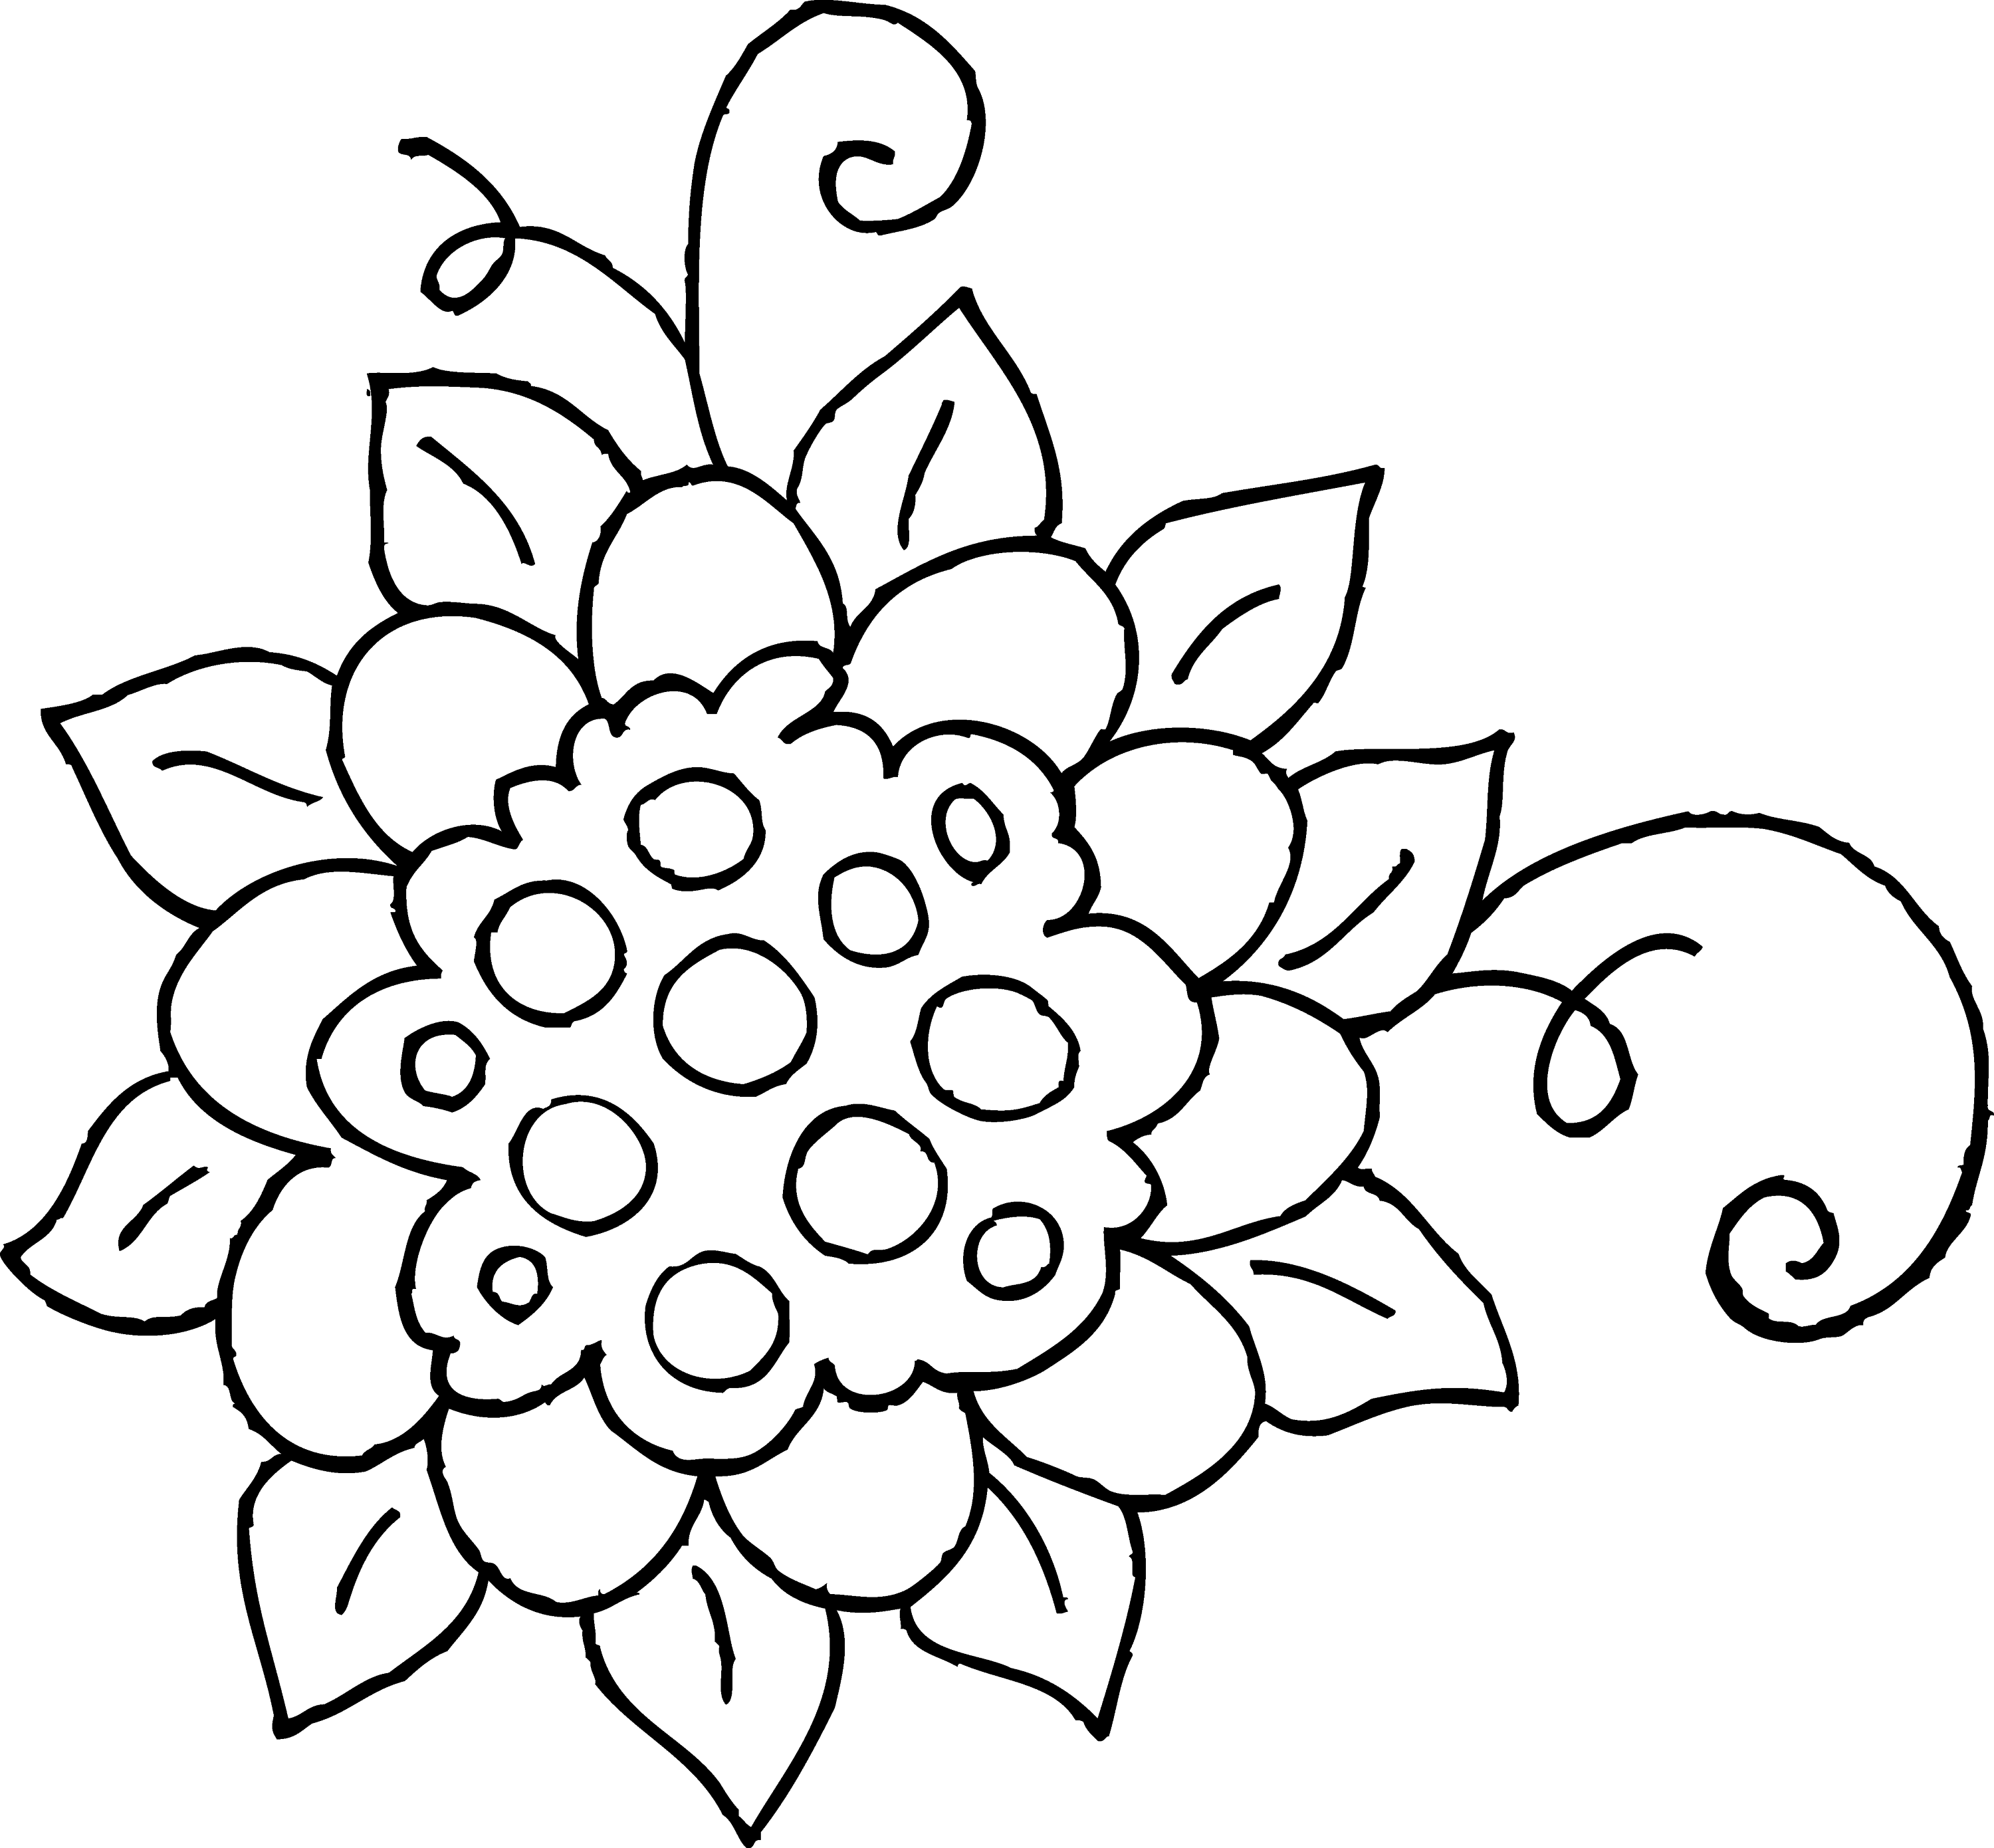 Cute spring flower coloring page 1 free clip art